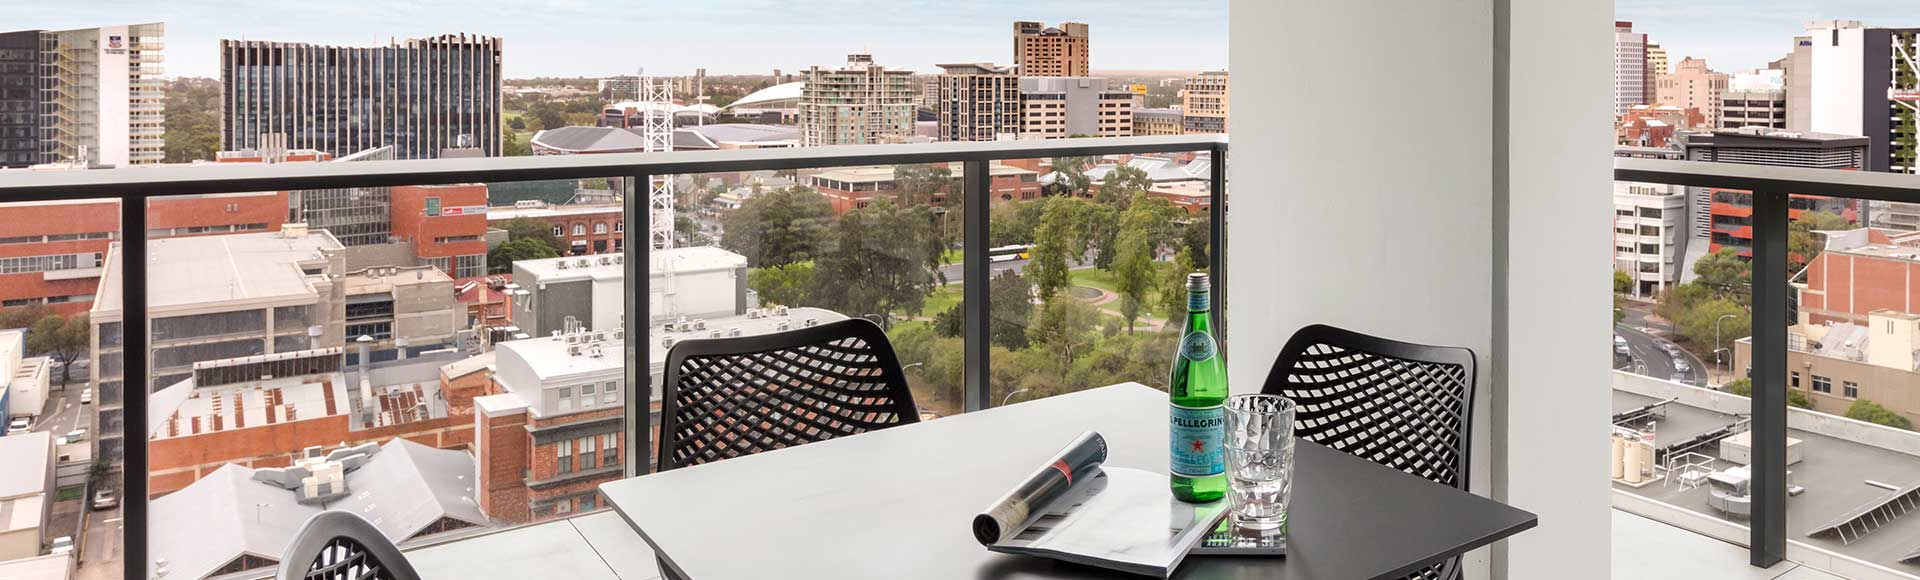 Avani Adelaide private balcony with modern facilities